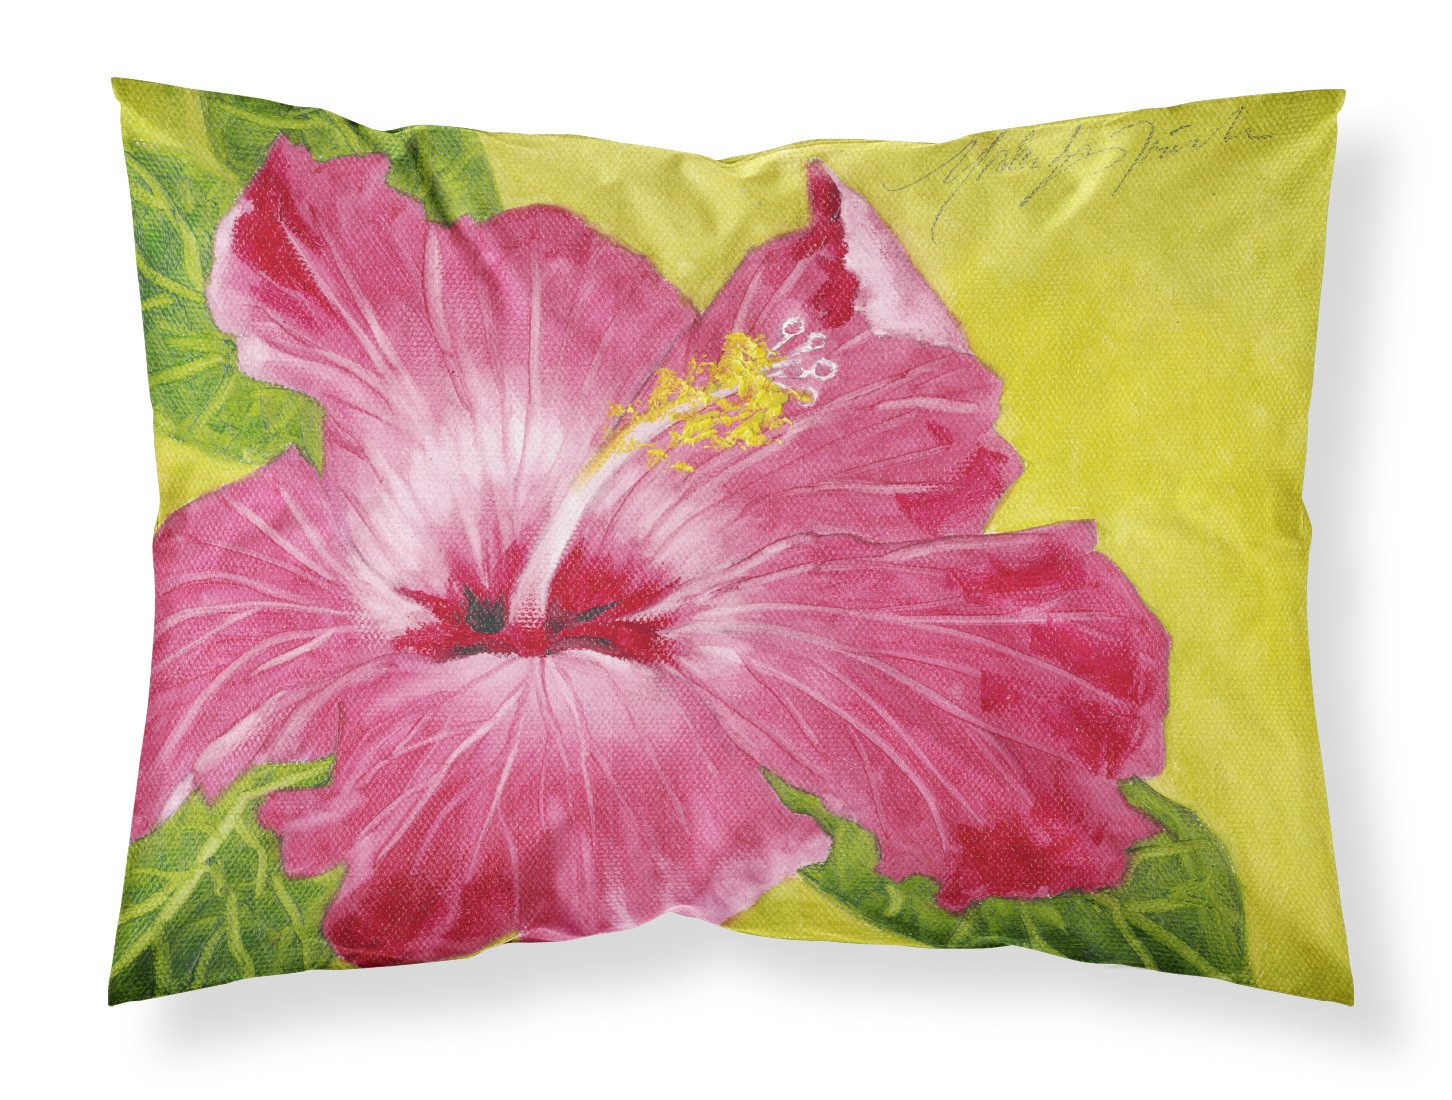 Hot Pink Hibiscus by Malenda Trick Fabric Standard Pillowcase TMTR0317PILLOWCASE by Caroline's Treasures